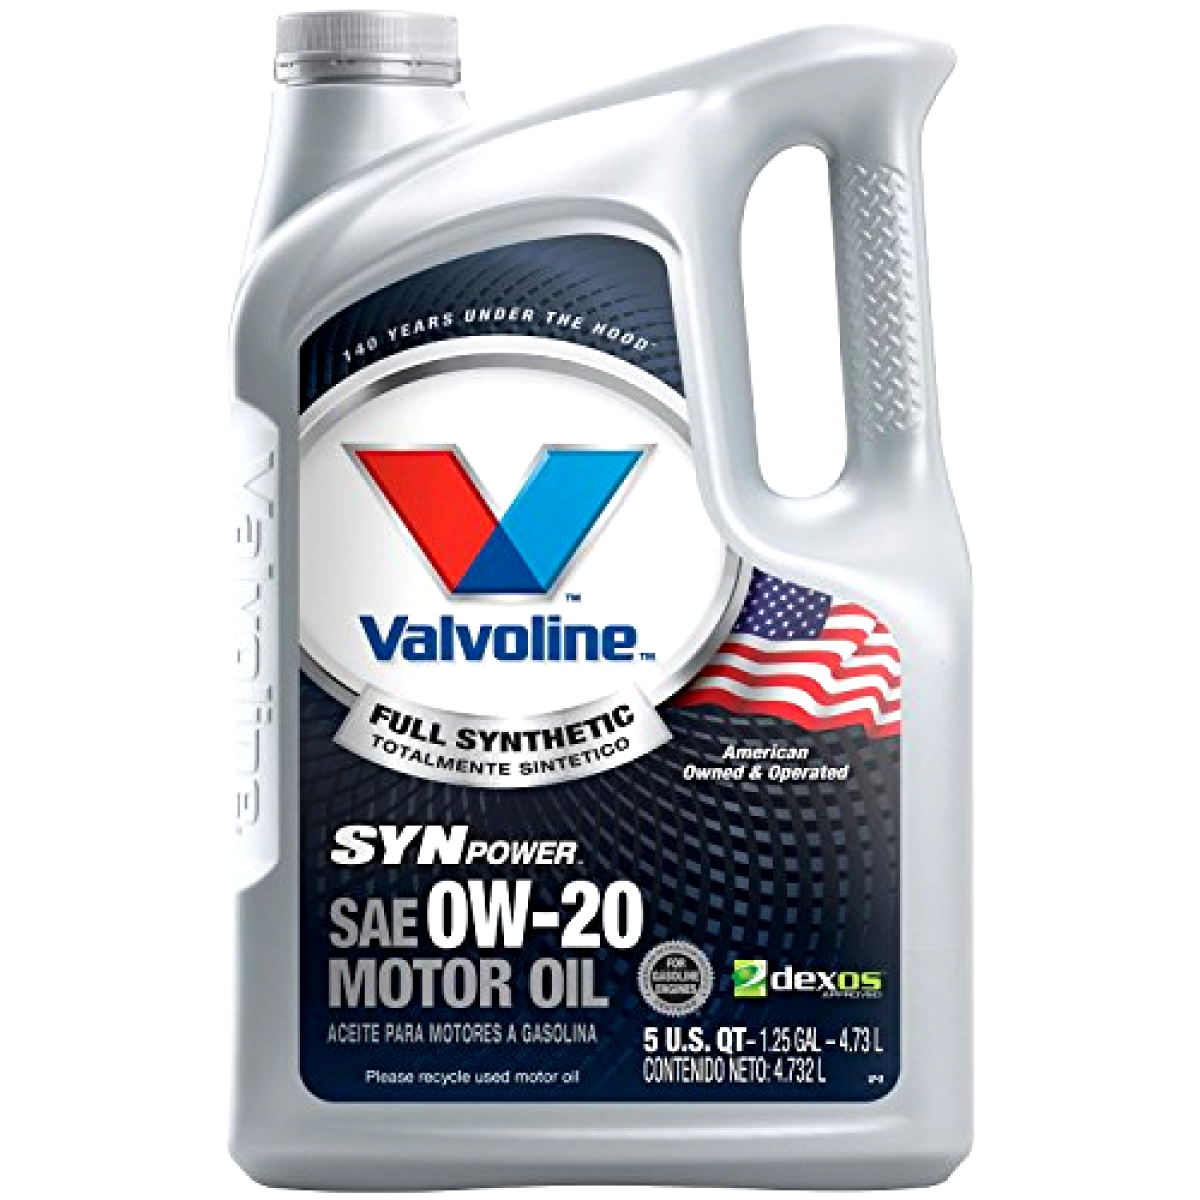 5 Quart Valvoline SynPower Full Synthetic Motor Oil SAE 0W-2